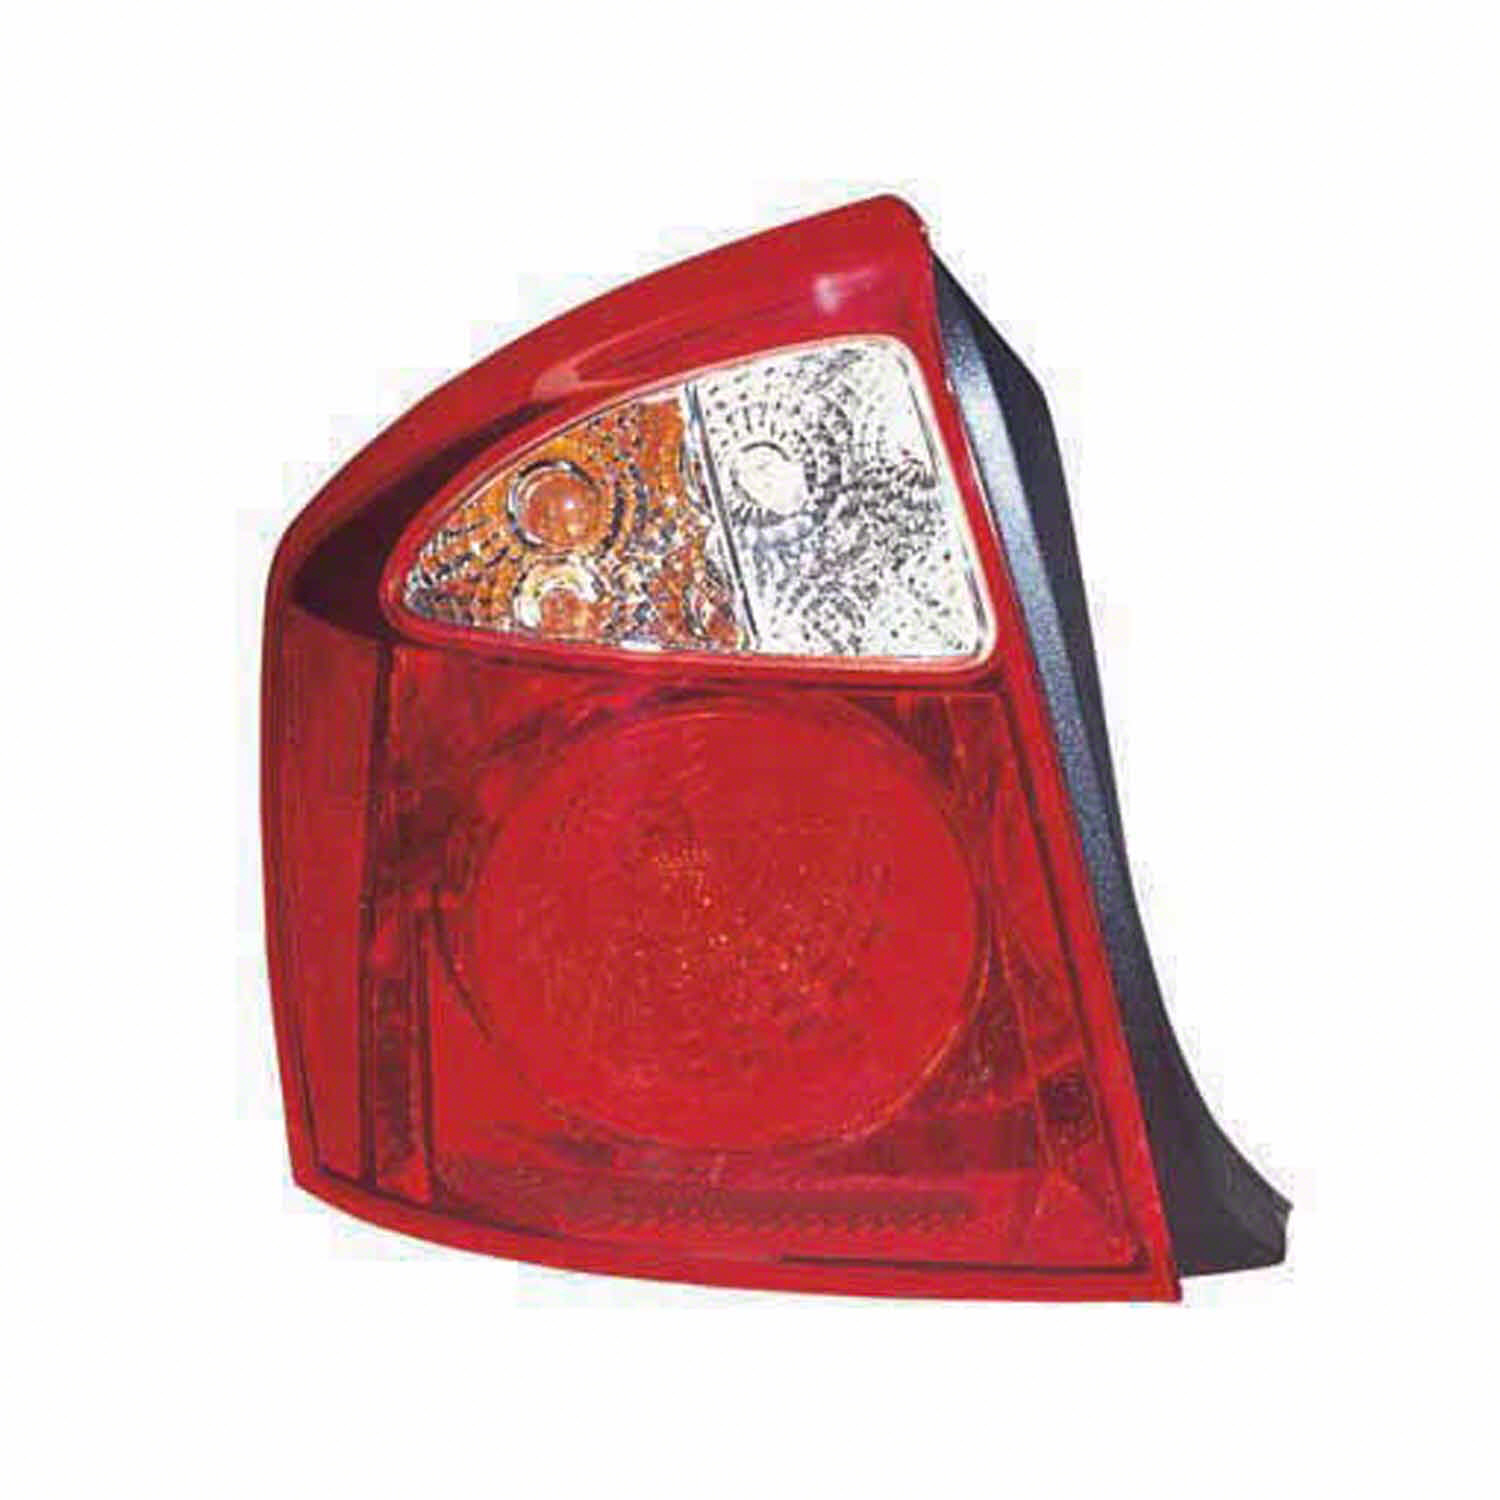 2004-2006 Kia Spectra  Aftermarket Driver Side Rear Tail Lamp Assembly 924012F020